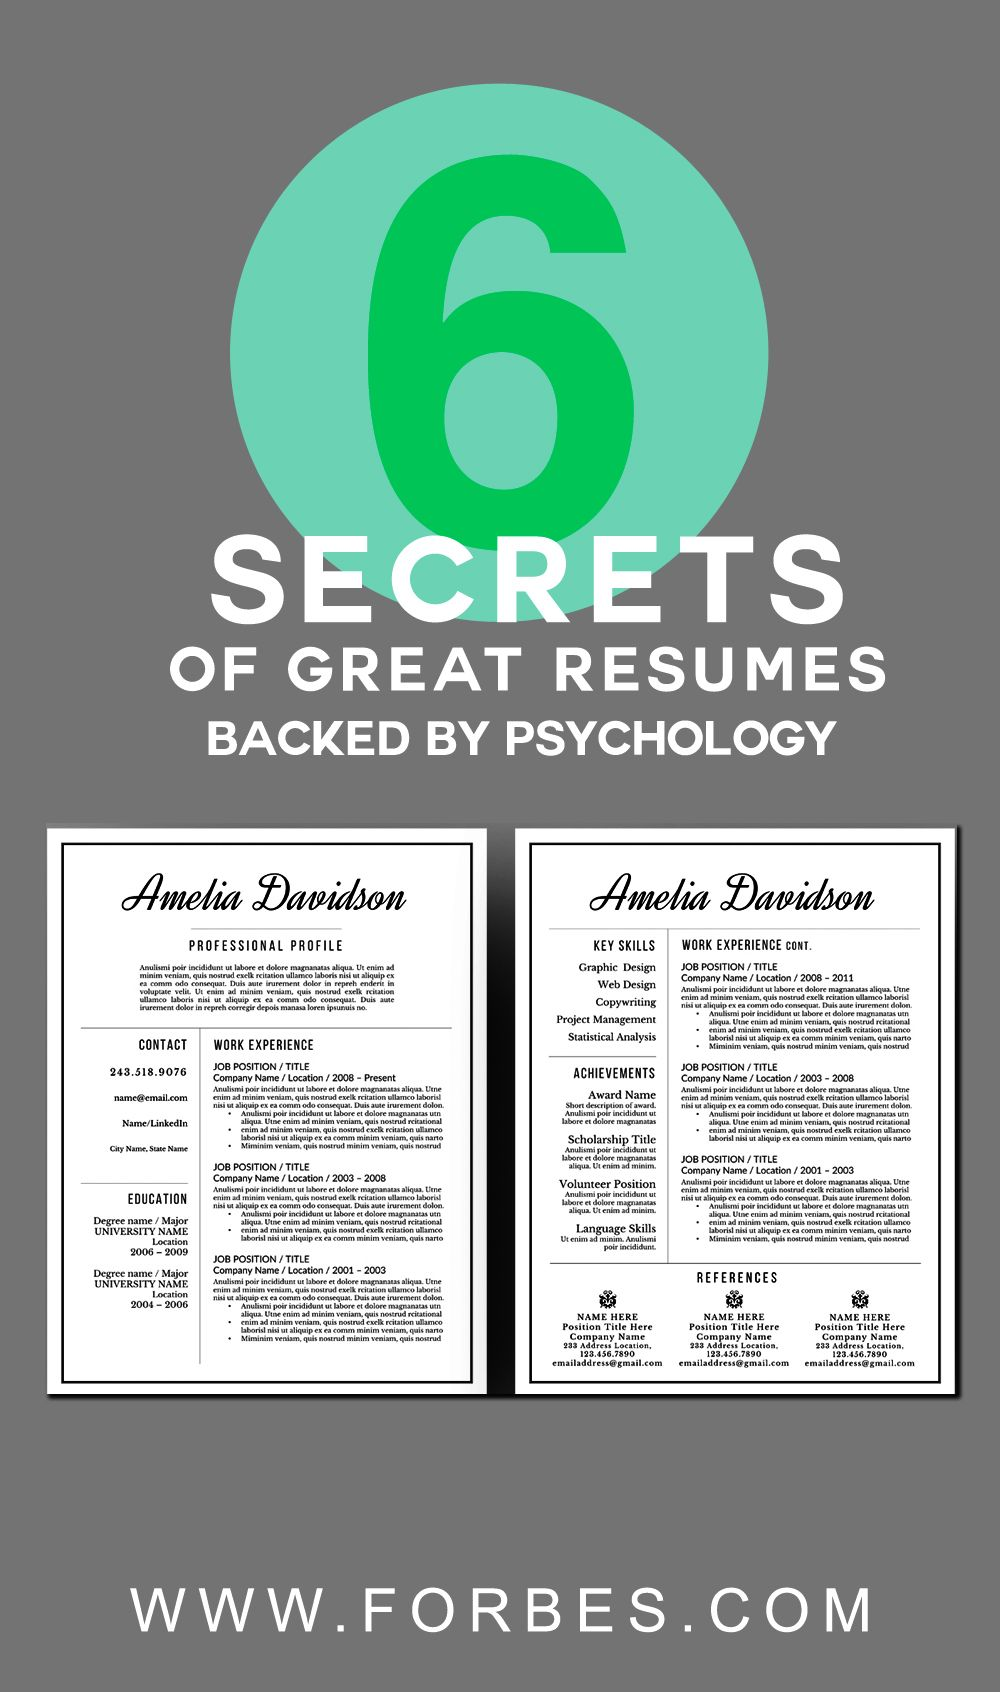 Marvelous 6 Secrets Of Great Resumes, Backed By Psychology With Forbes Resume Tips